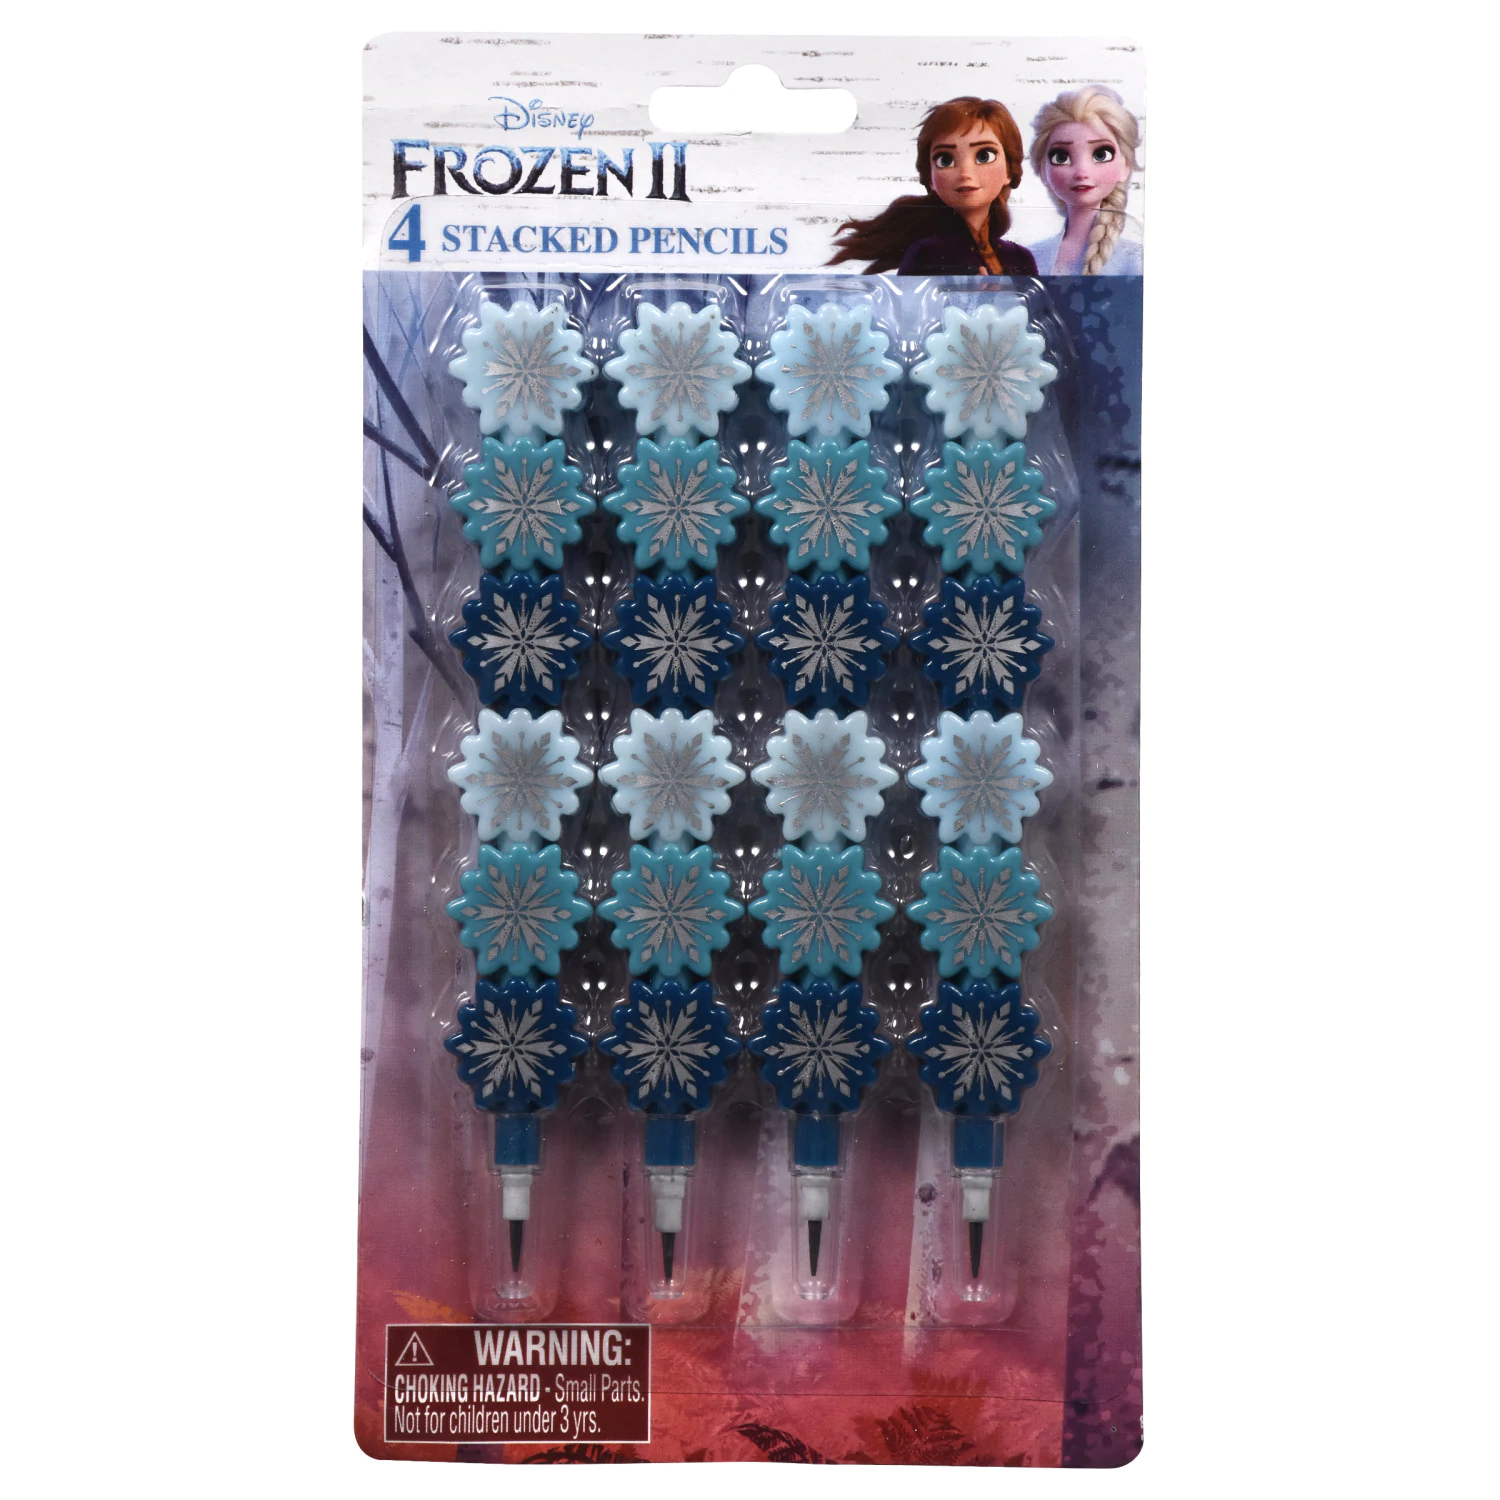 Frozen 2 stacked pencil 4 pack